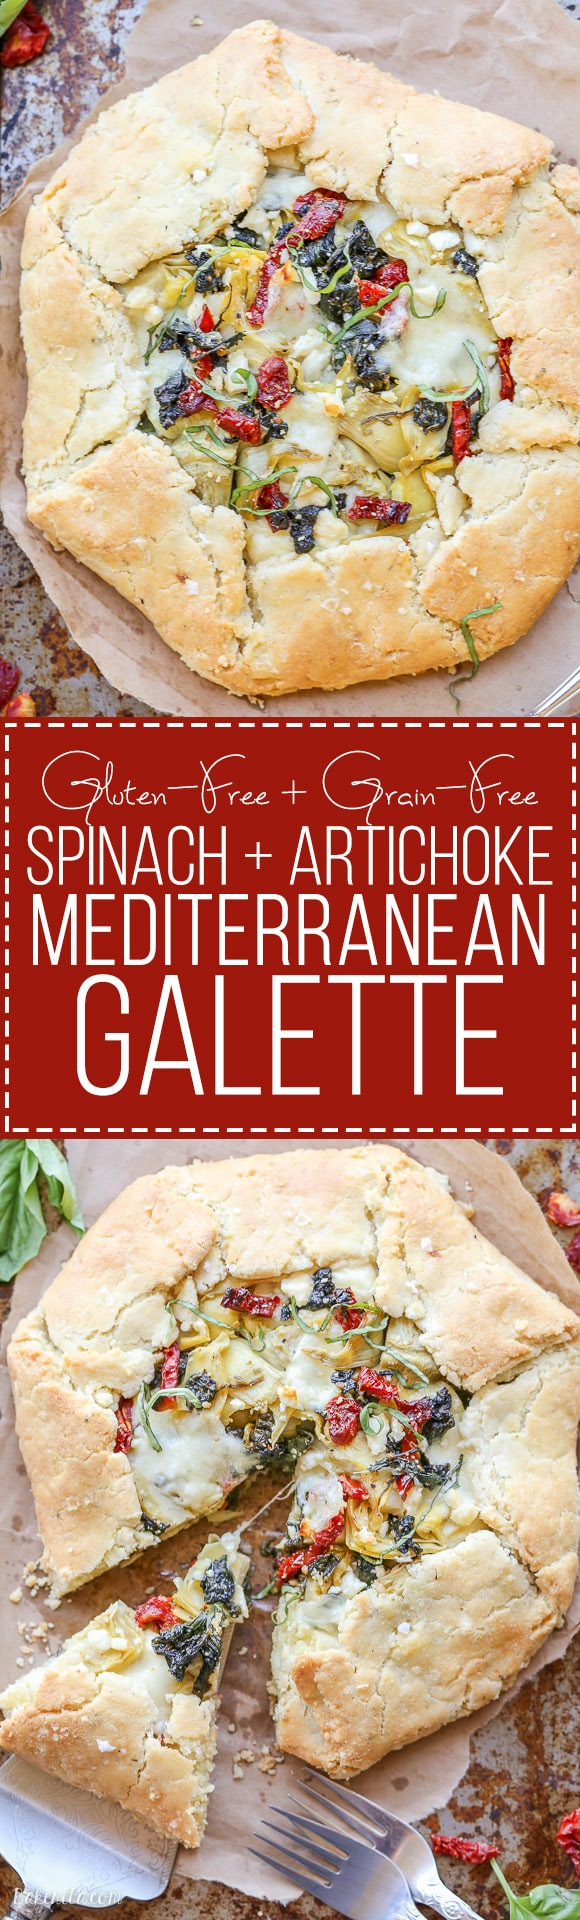 apple galette potato galette strawberry galette apple galette how to ...